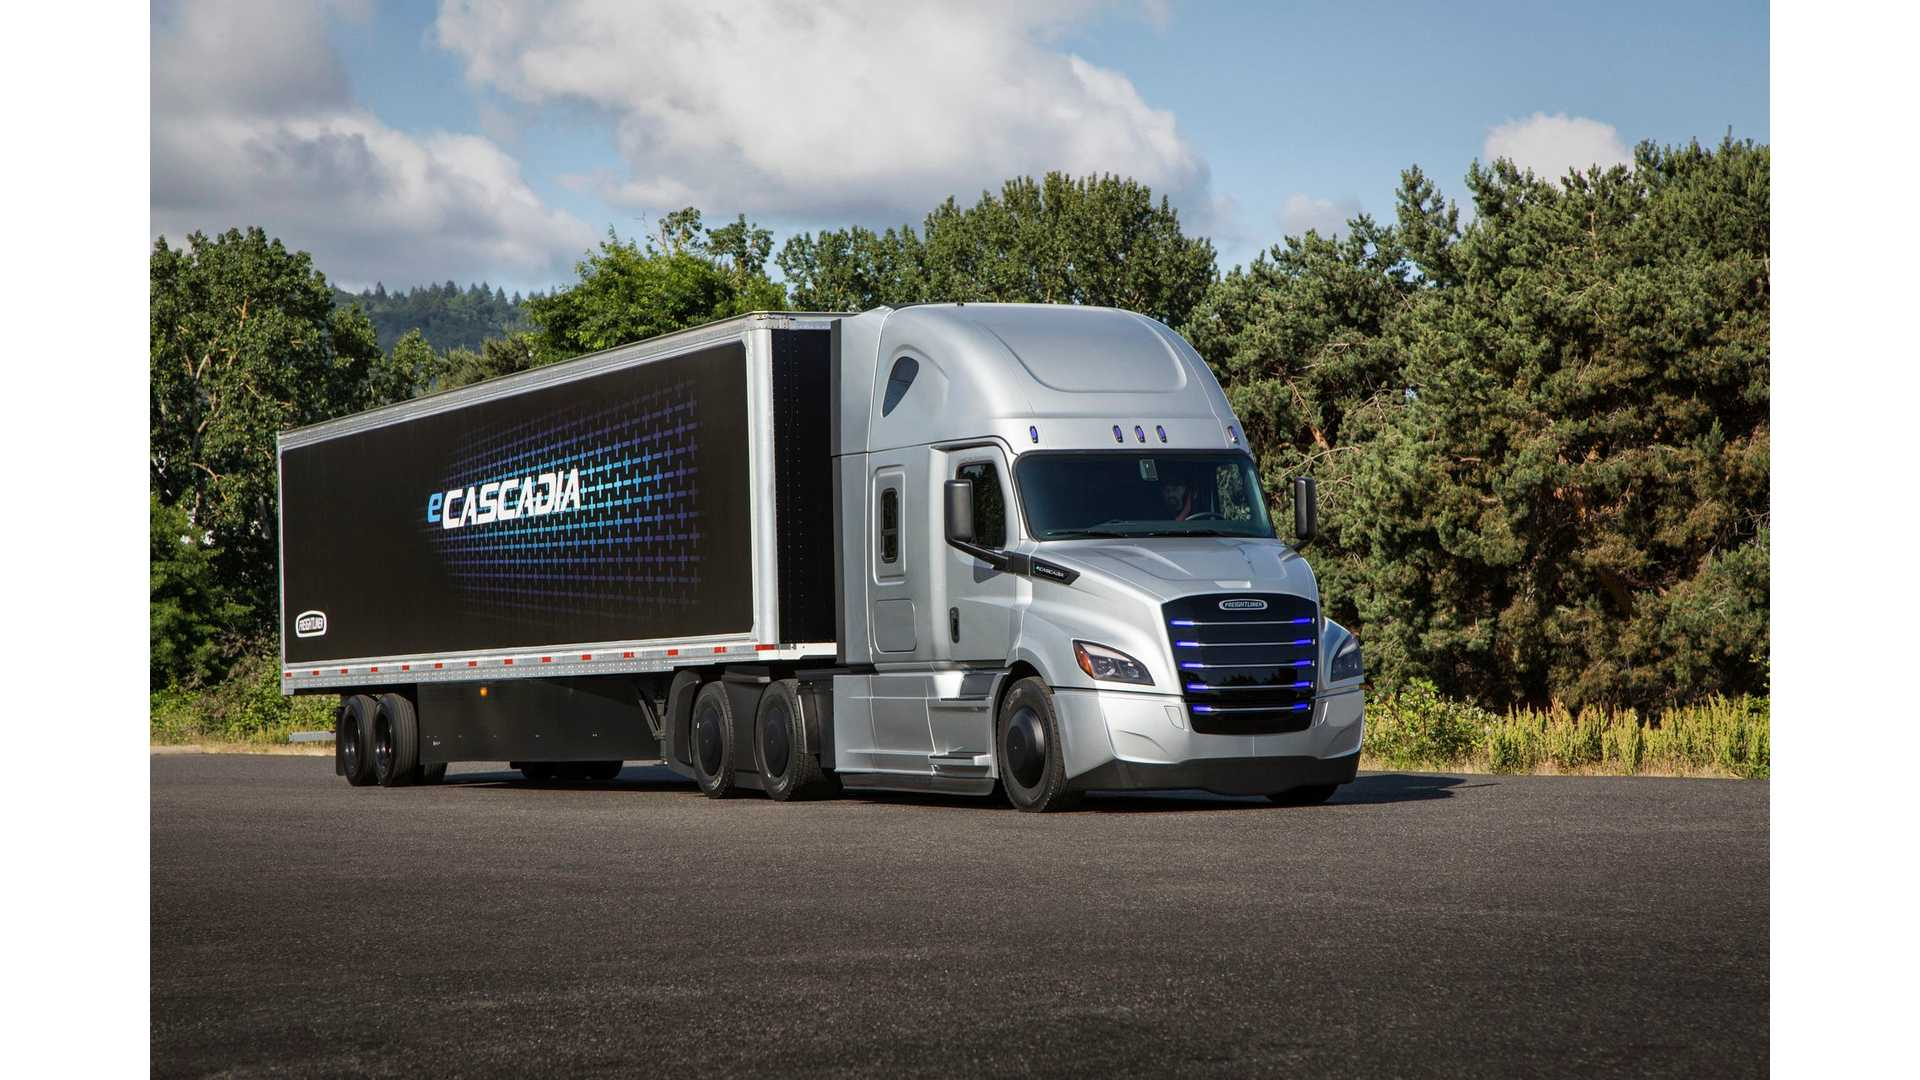 West Coast Power Providers Explore Charging For Trucks Along I-5